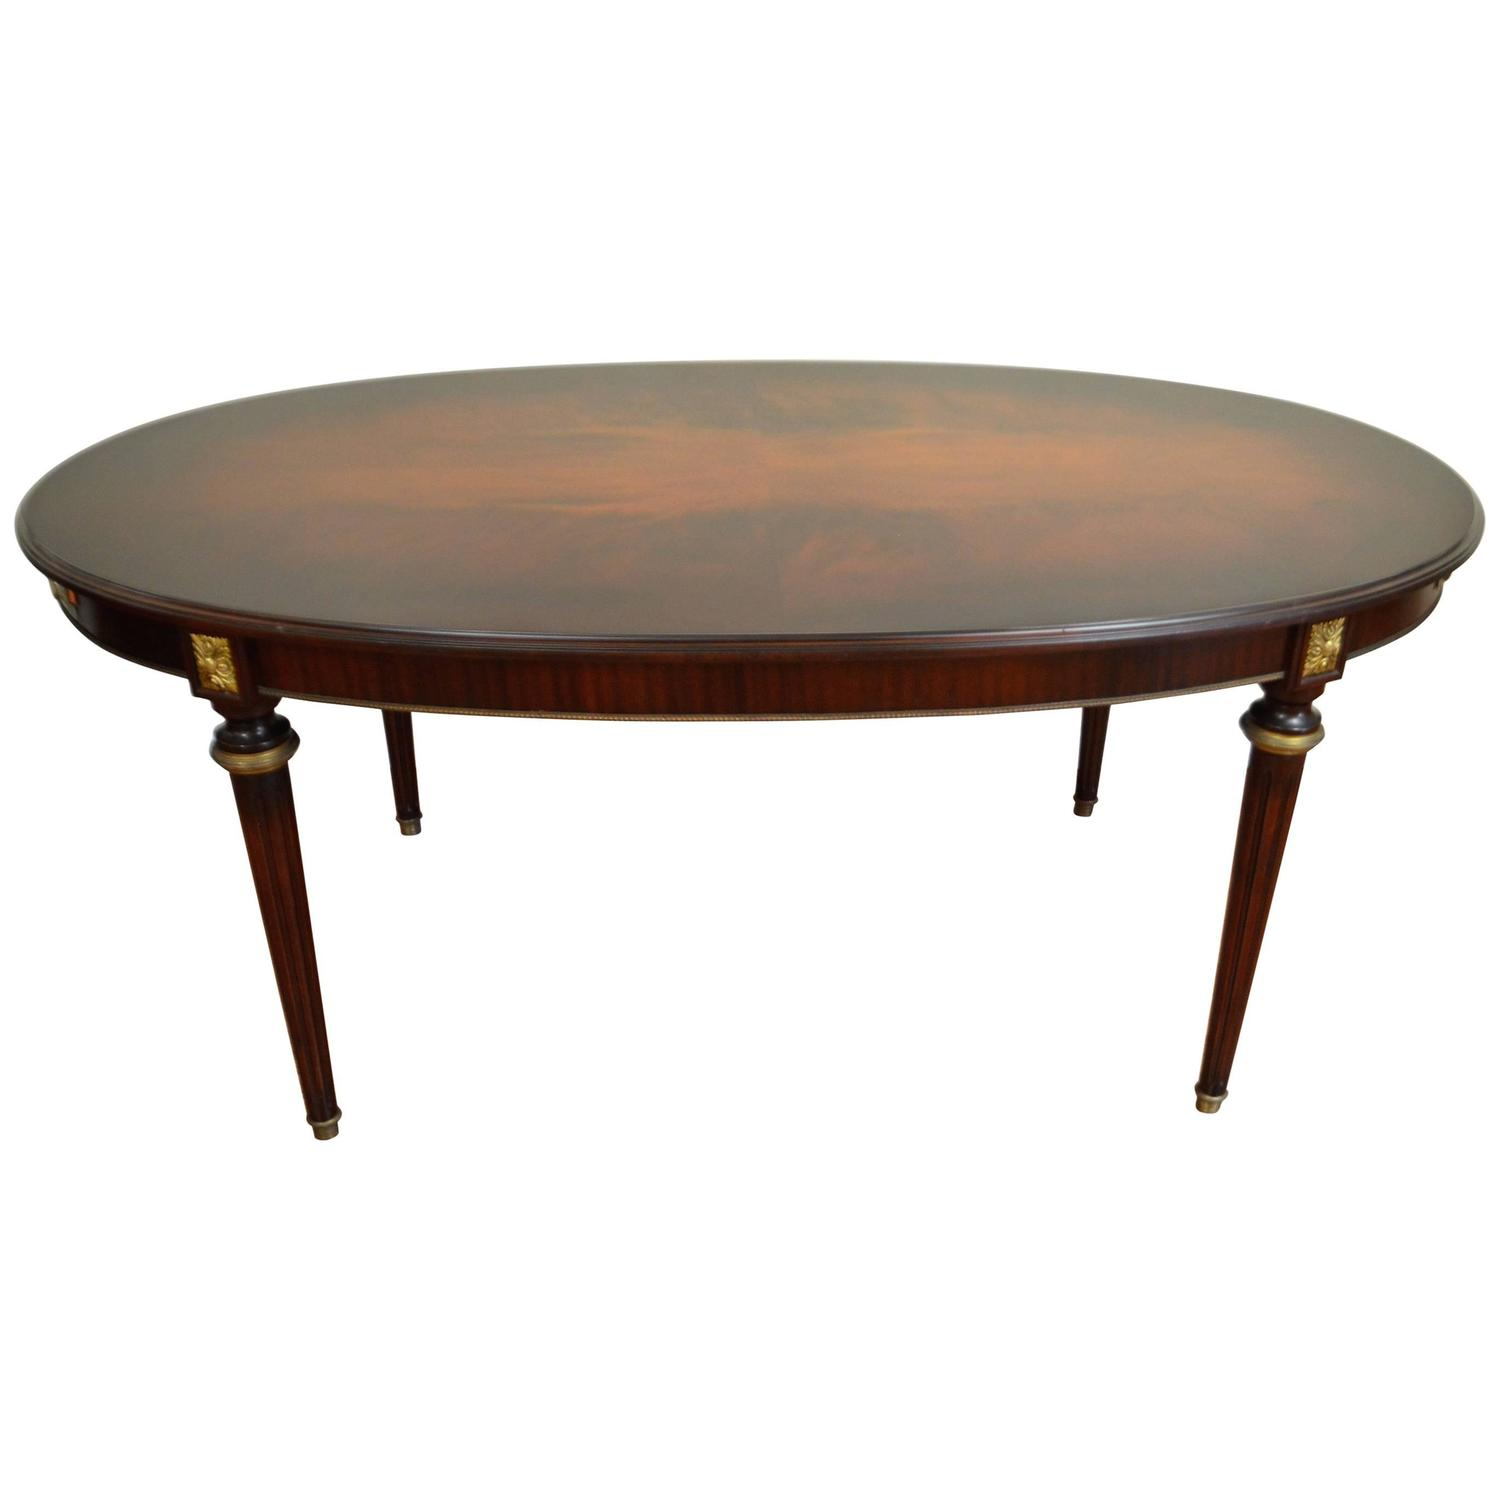 louis xvi style magogany dining table at 1stdibs. Black Bedroom Furniture Sets. Home Design Ideas